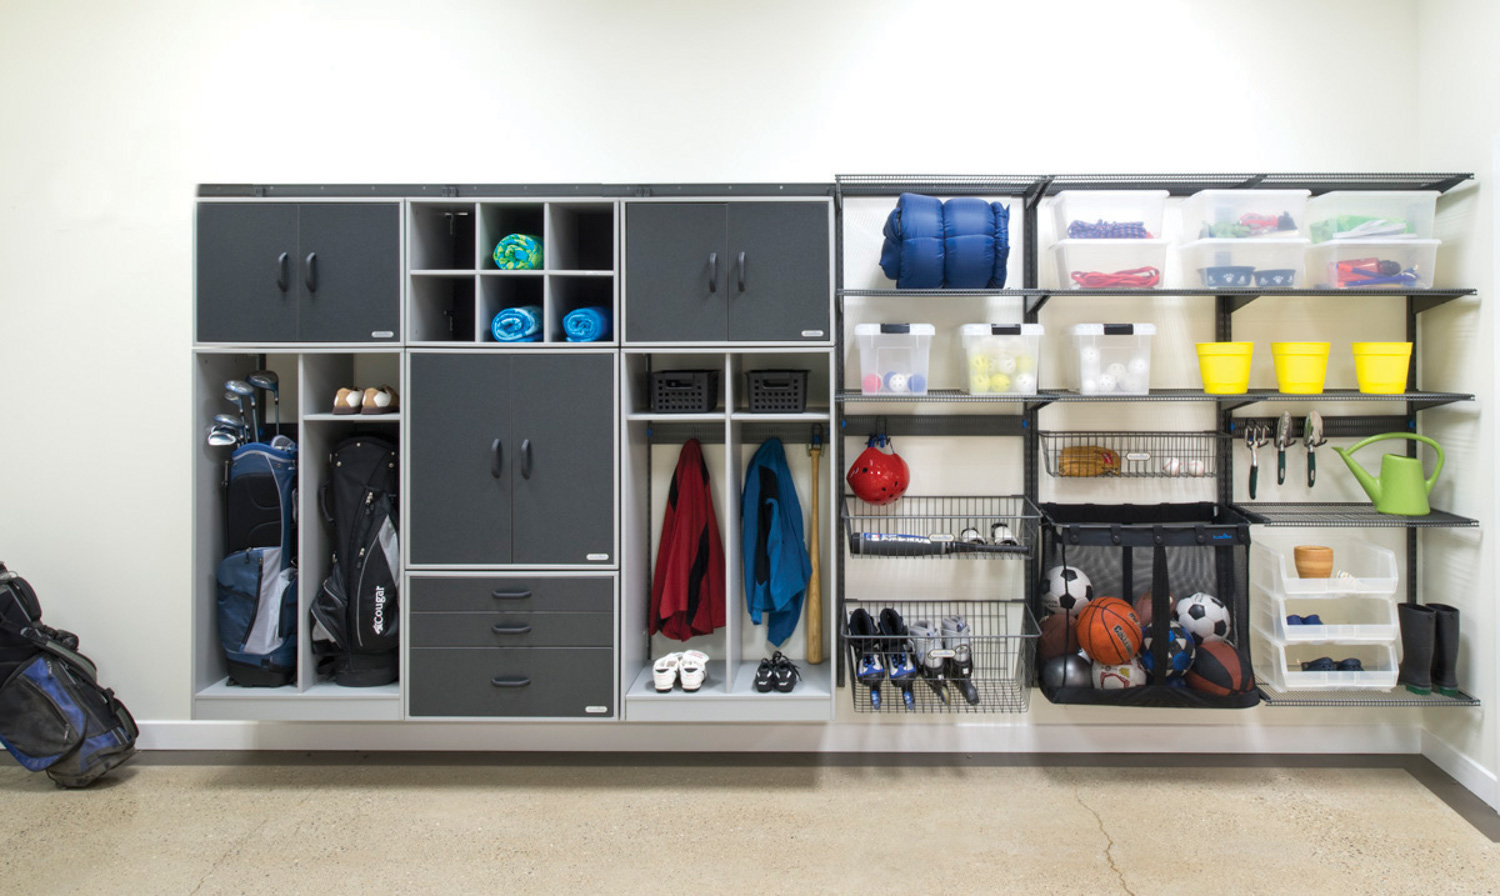 23 more - How To Make Your Room Organized